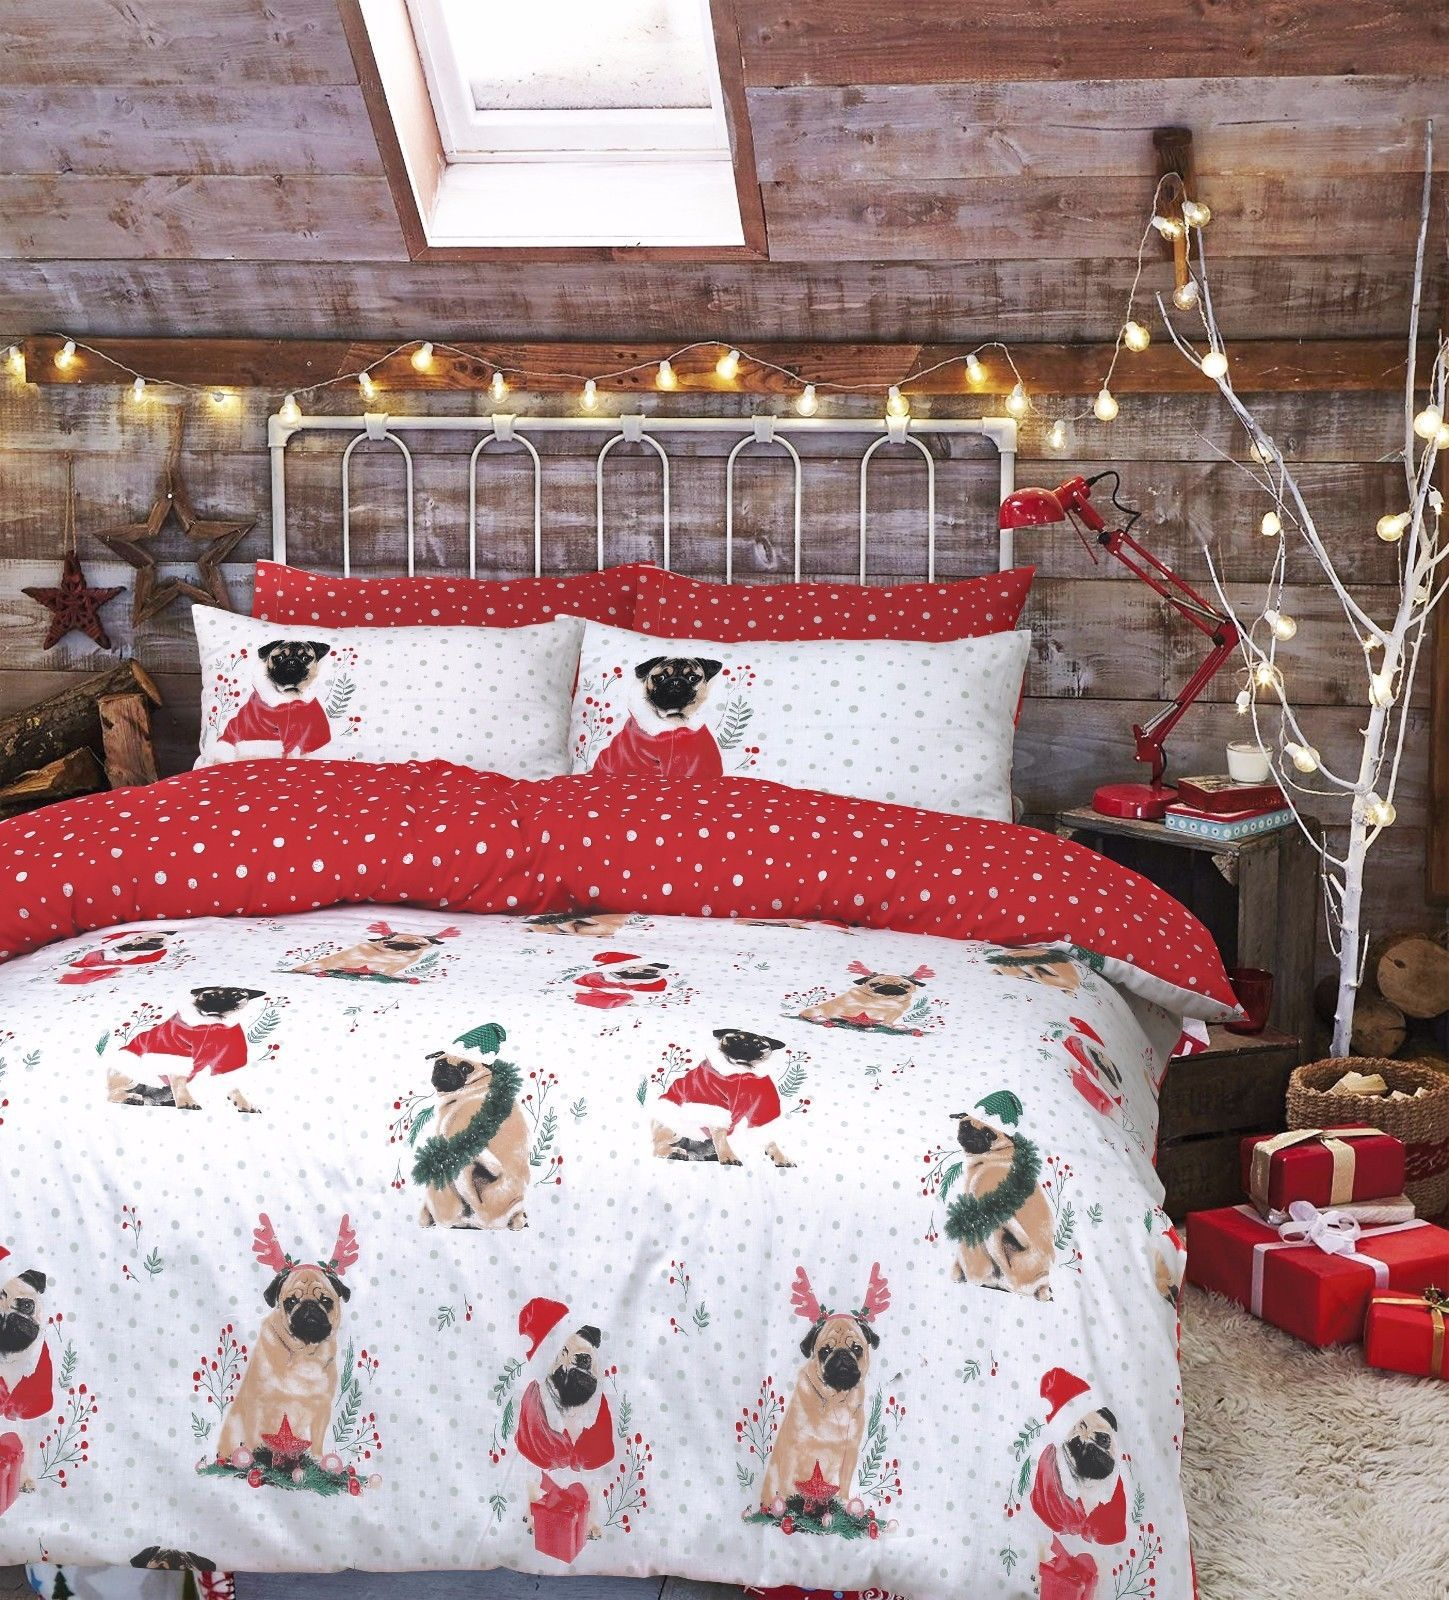 Pug Christmas Bedding Sets Available In Sizes Singledouble King